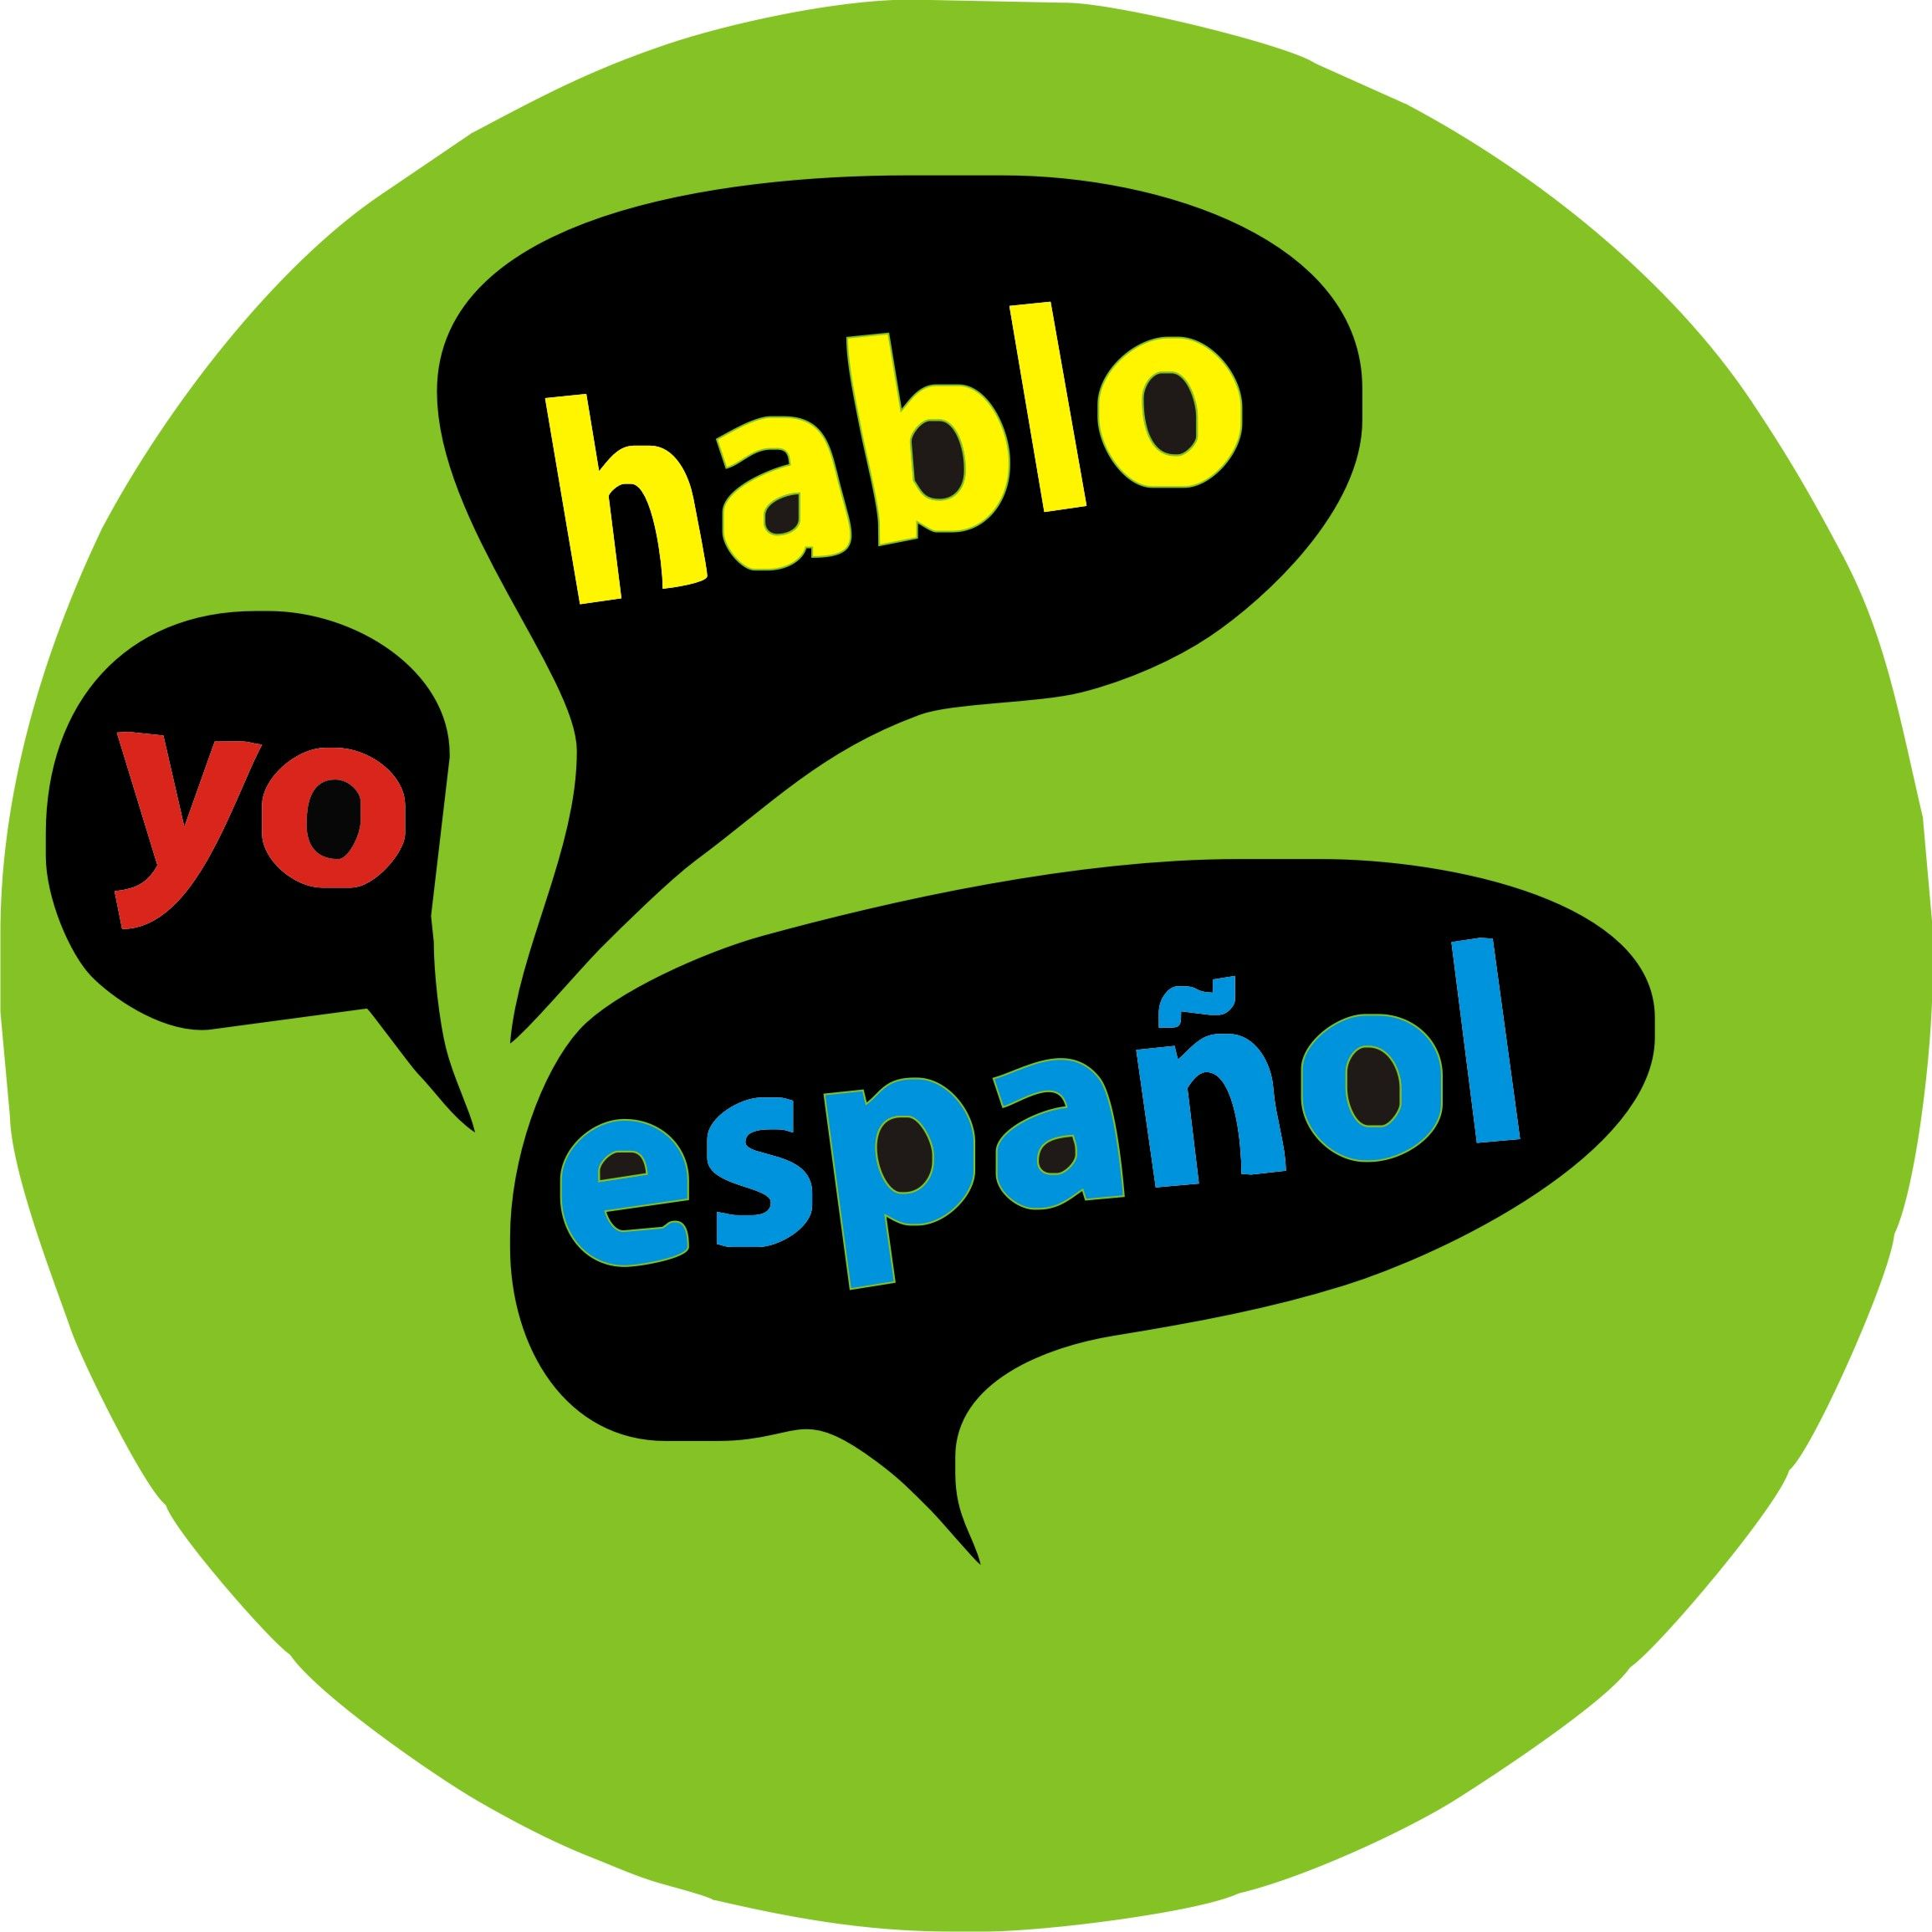 Learn Spanish, French or Other Languages Online - Babbel.com